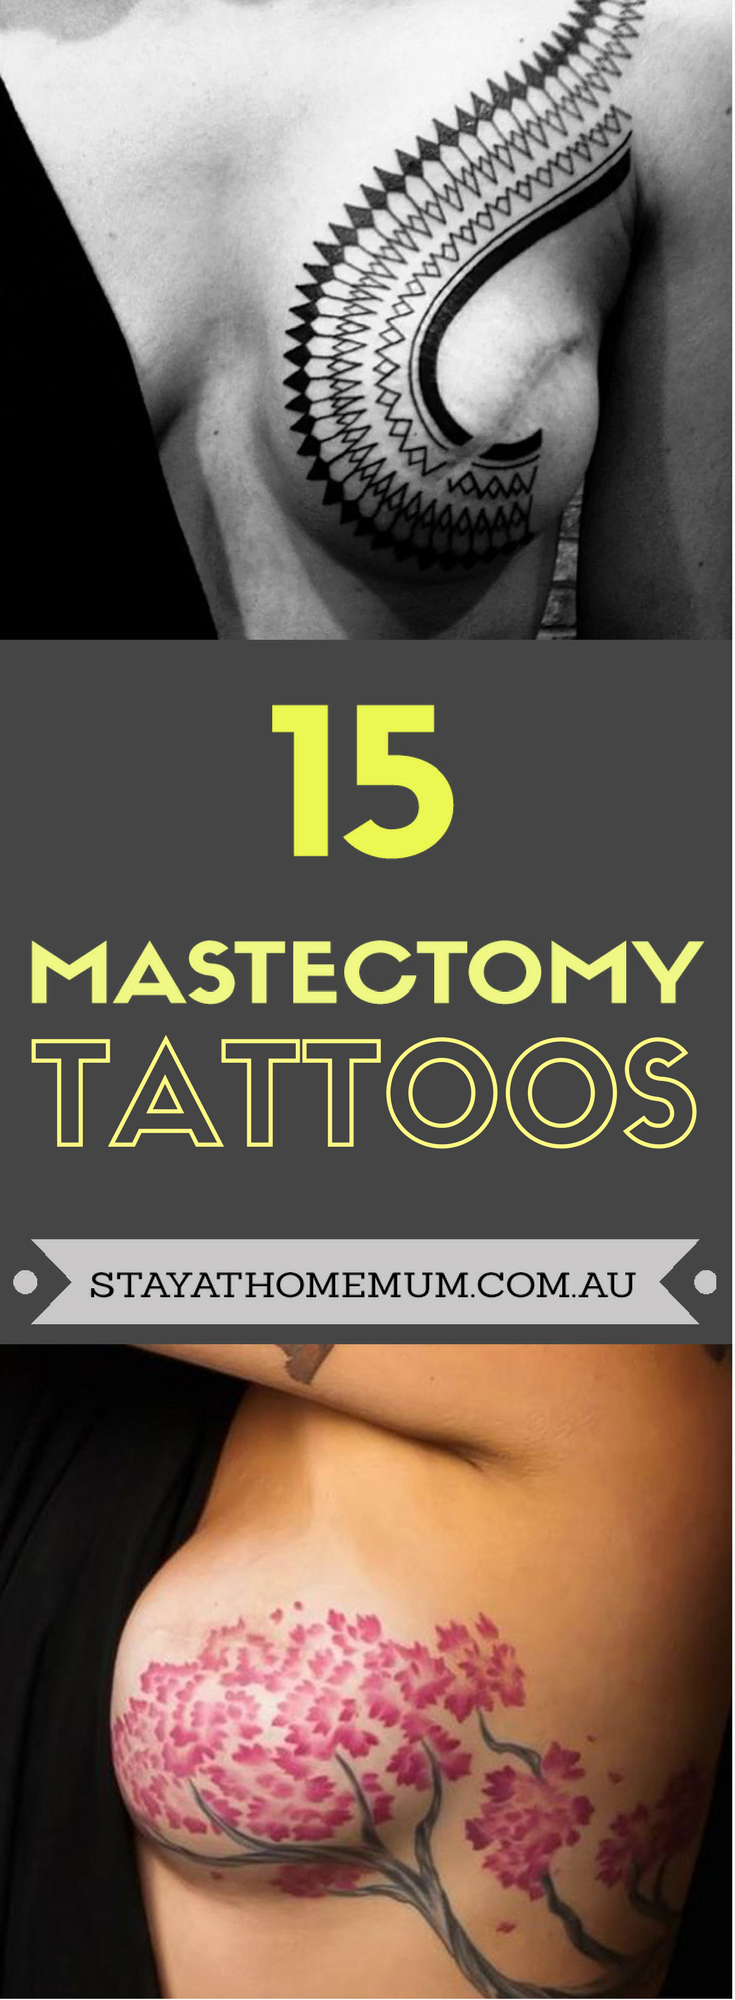 the use of tattoos among women who have undergone mastectomy How tattoos are transforming mastectomy long way toward giving women who have undergone mastectomies a women who get post-mastectomy tattoos go a.